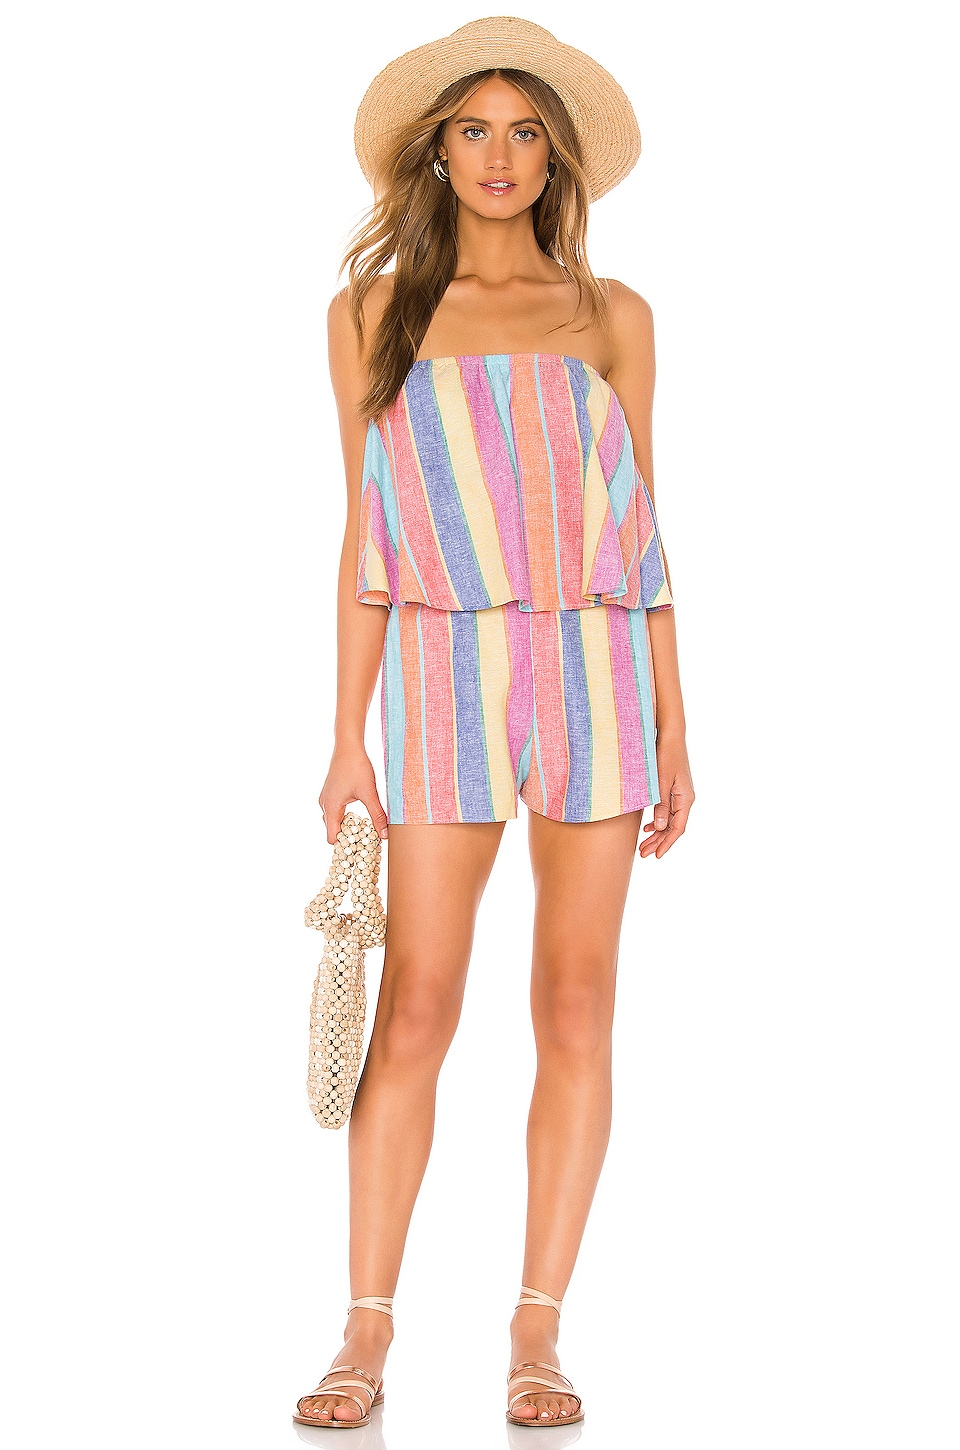 Show Me Your Mumu Thelma Romper in Rainbow Linen Stripe